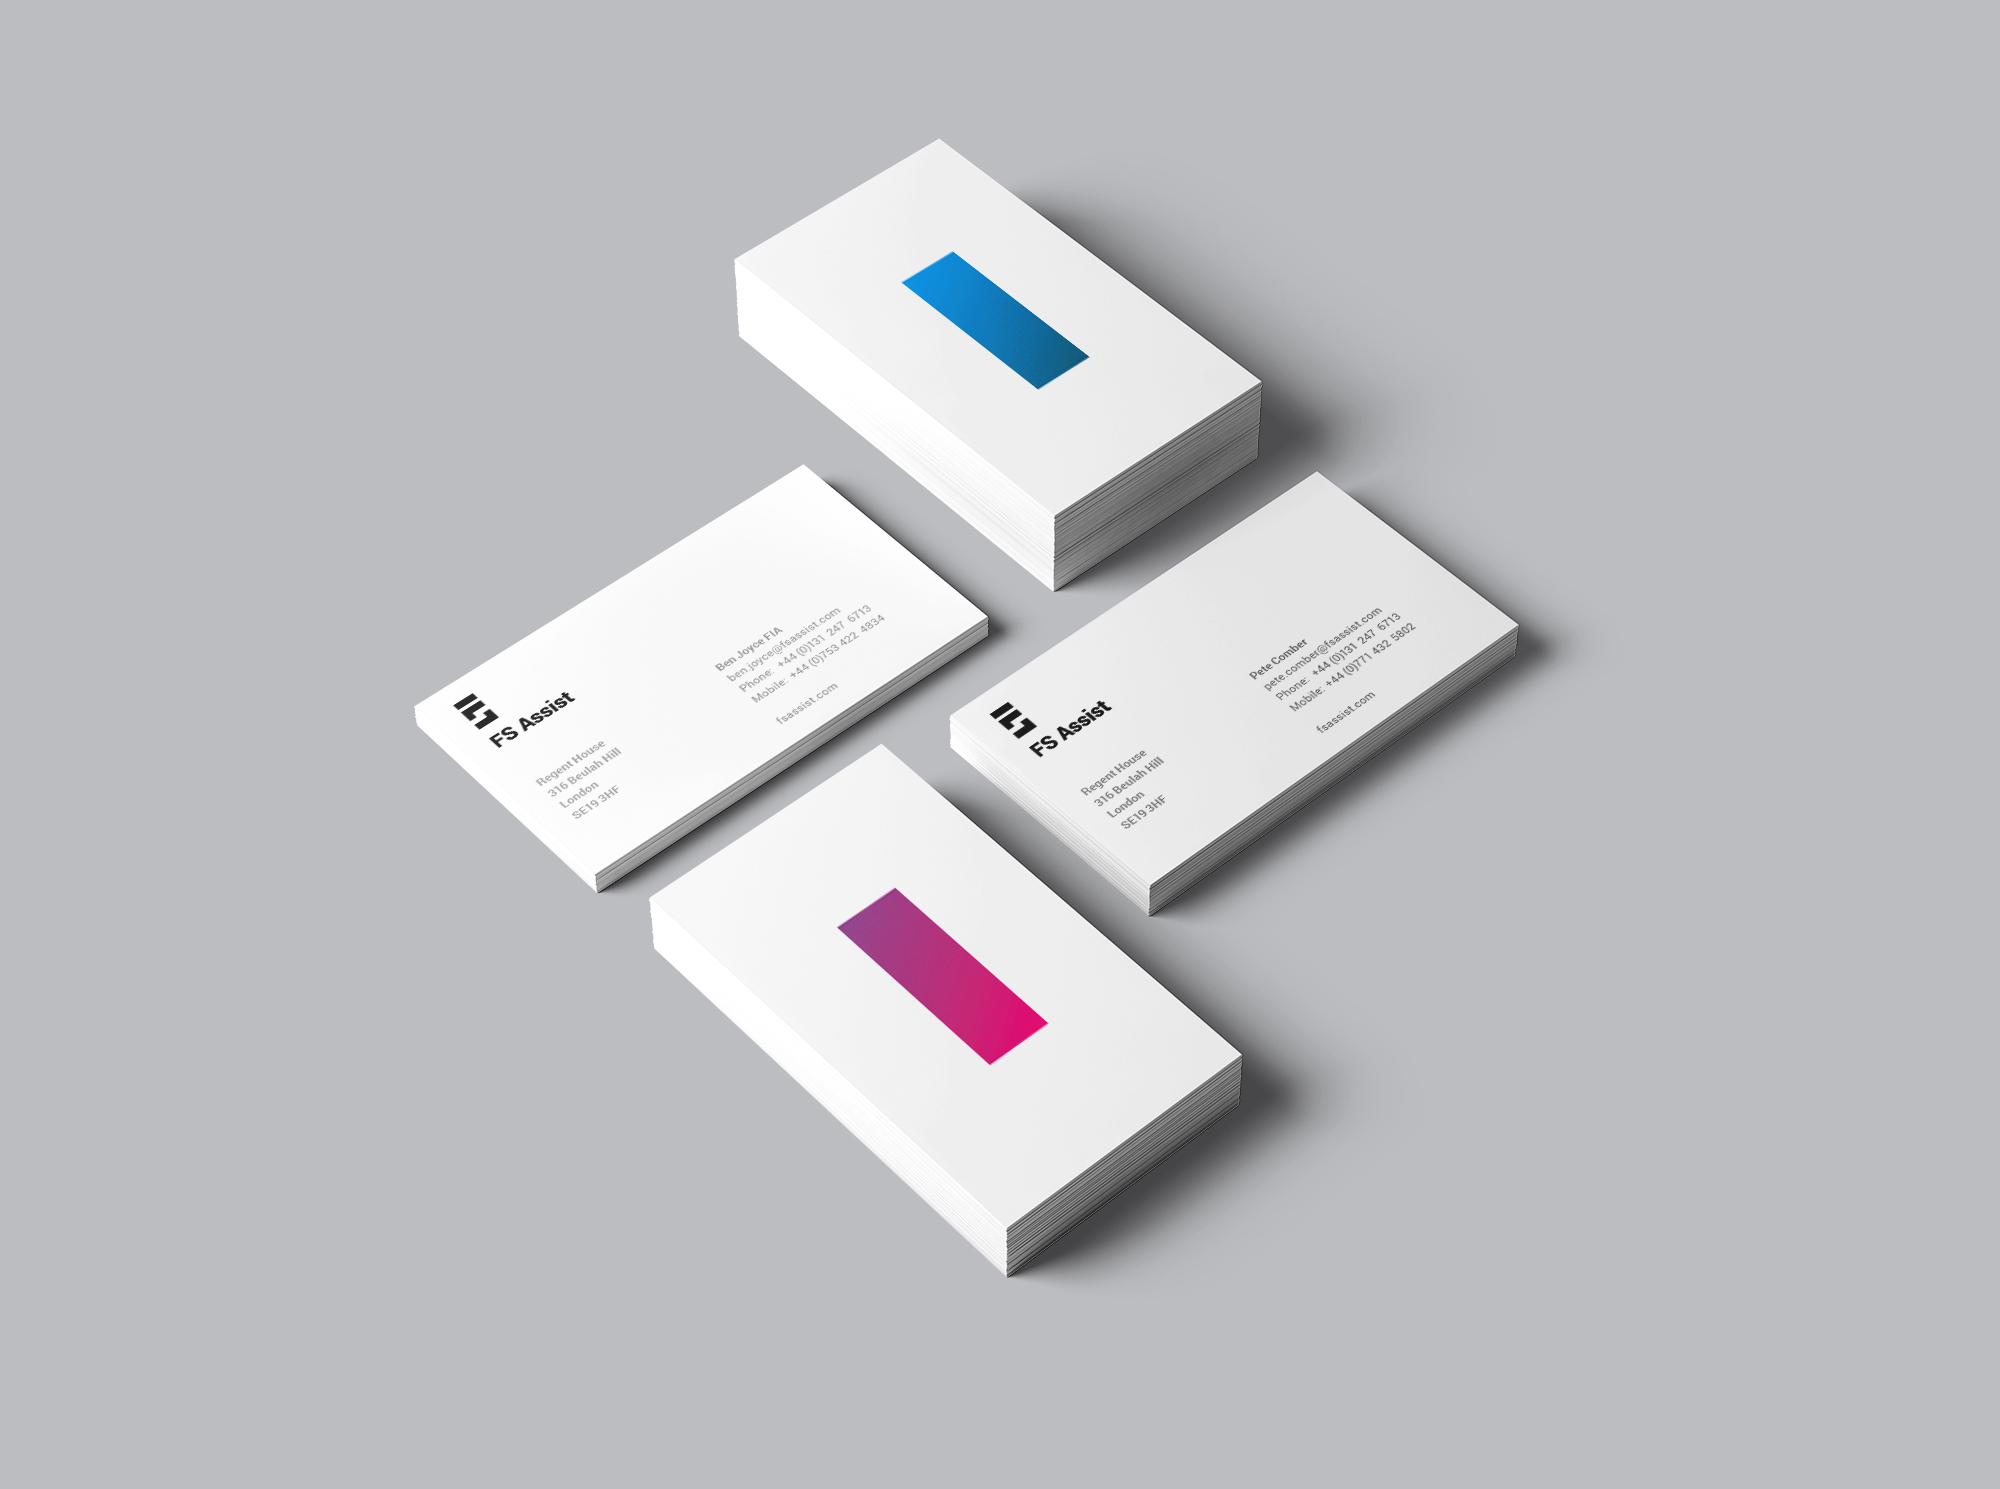 FS-Assist-business-card-by ALSO Agency-1.jpg